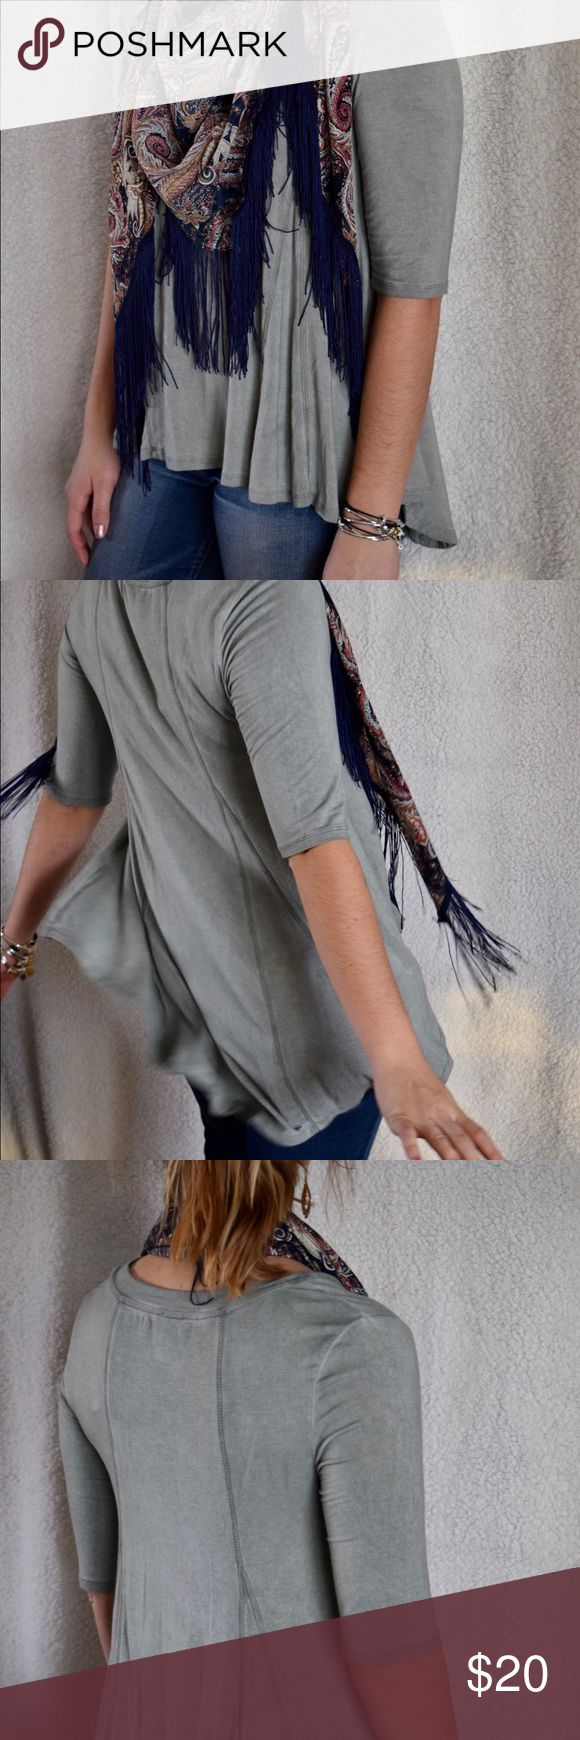 St. Tropez West Moss Green Flowy Shirt Such a comfortable material and style!  Very causal and flowy (I was having fun spinning :D )  Great neutral shirt to pair with fun scarves or bold jewelry!   Material: 94% Rayon 6% Spandex  1/2 sleeve shirt (though categorized as long sleeve) St. Tropez Tops Tees - Long Sleeve